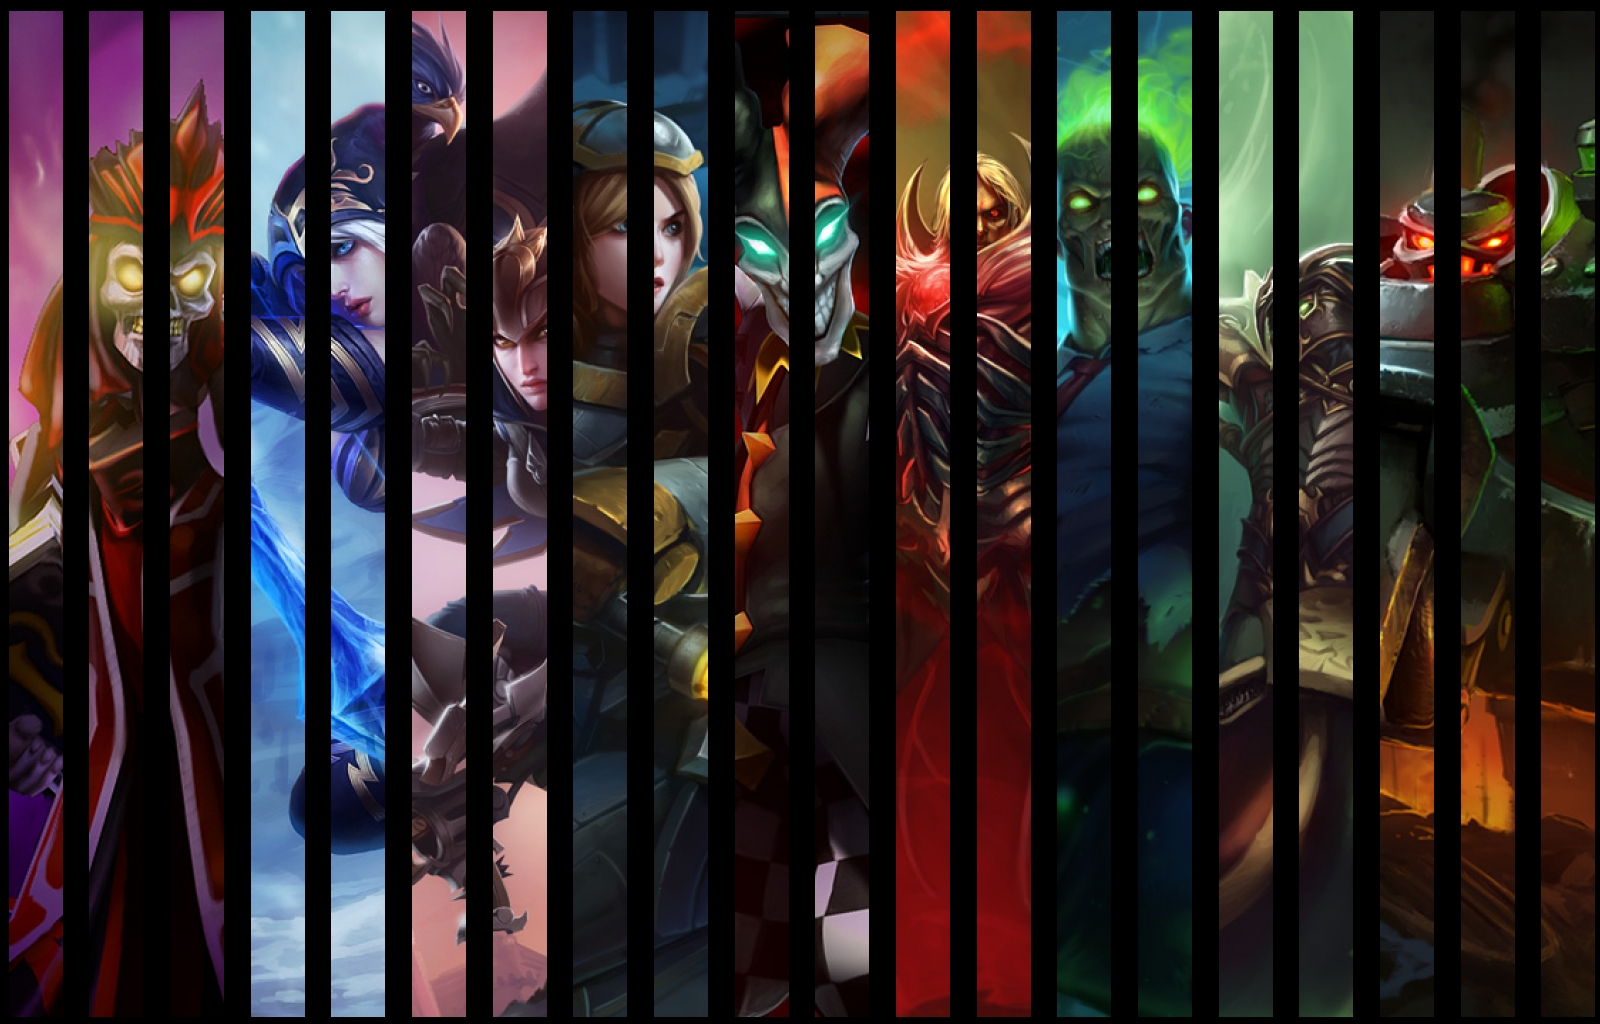 DotA 2 Wallpaper And Background Image